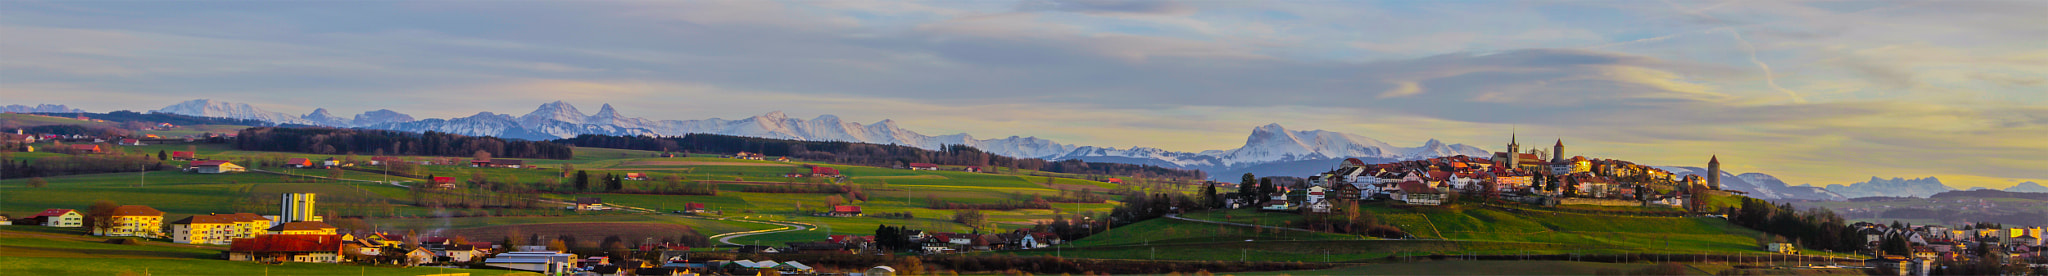 Photograph Panorama @ Romont by Stephan Scherz on 500px